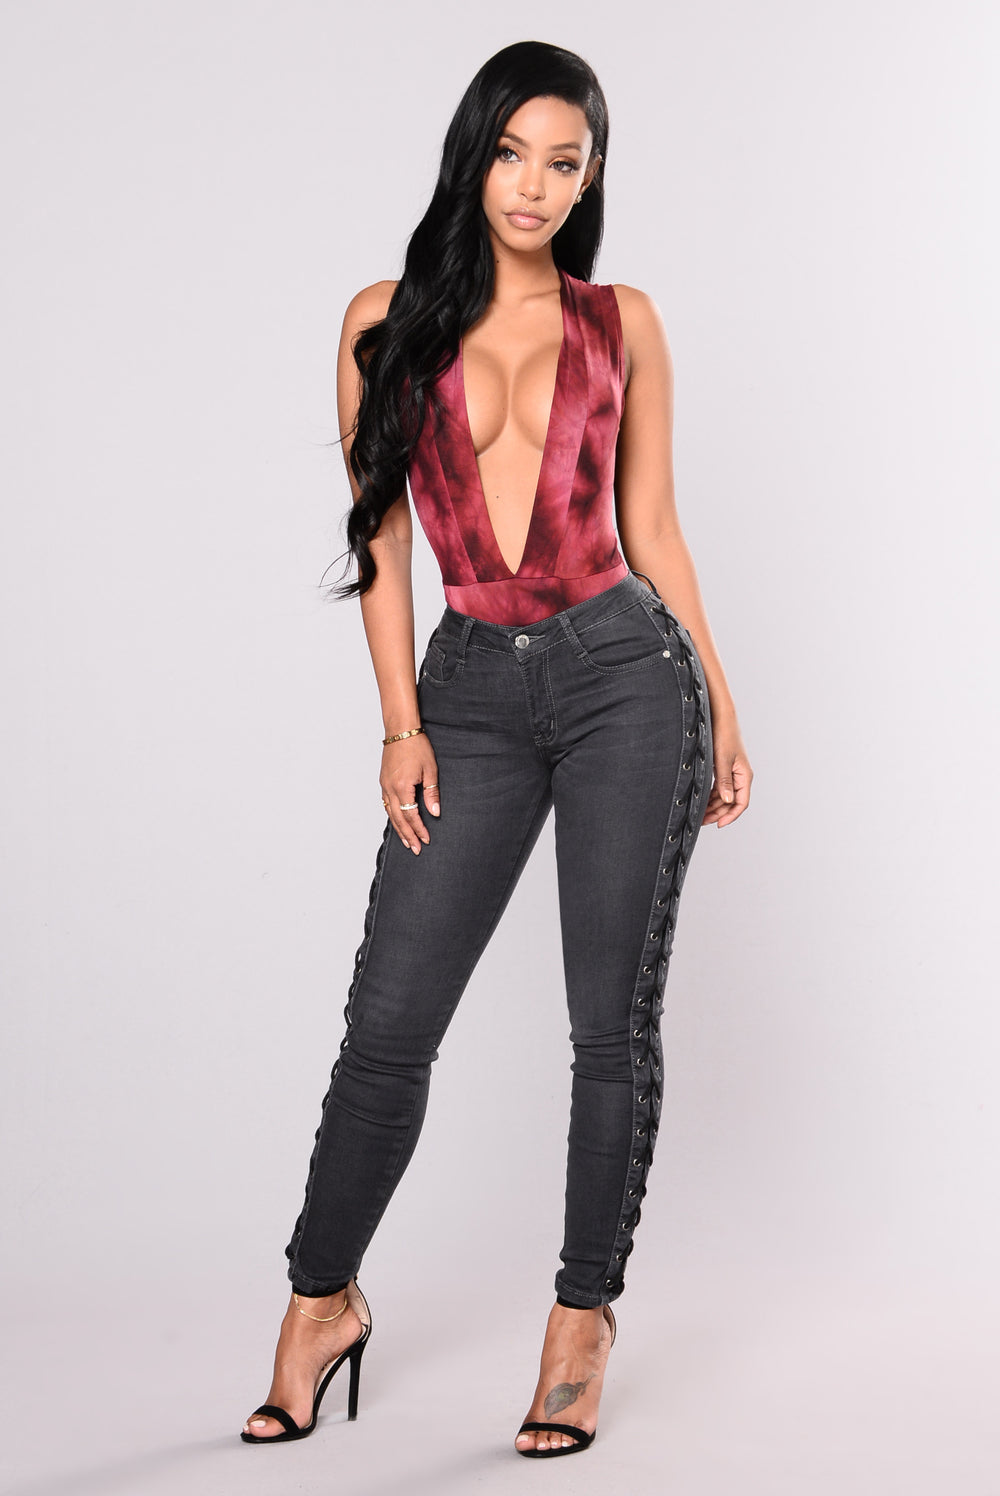 Long Island Tie Dye Bodysuit - Burgundy